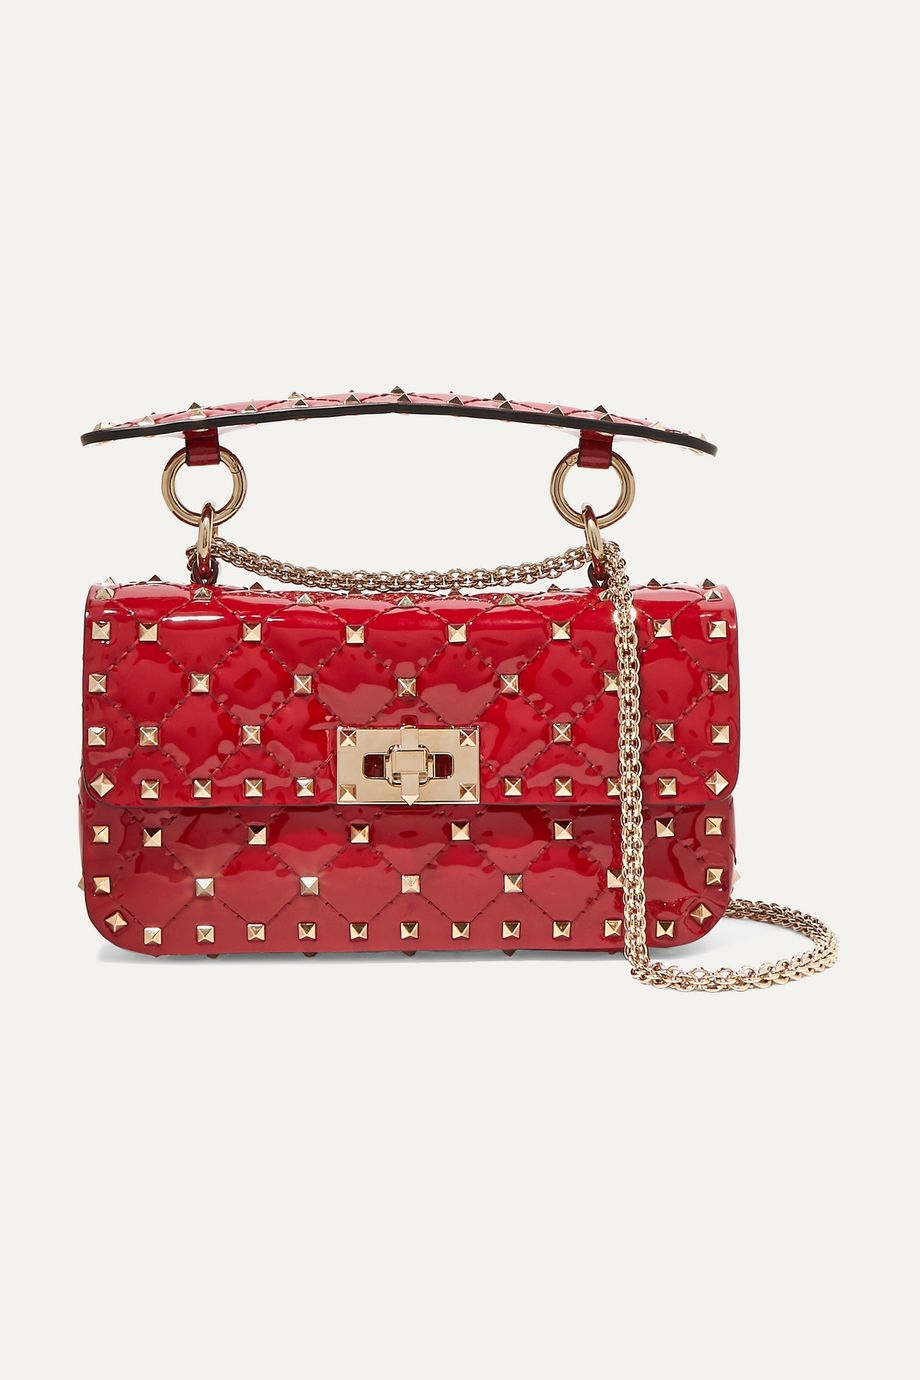 Valentino Valentino Garavani The Rockstud Spike small quilted patent-leather shoulder bag